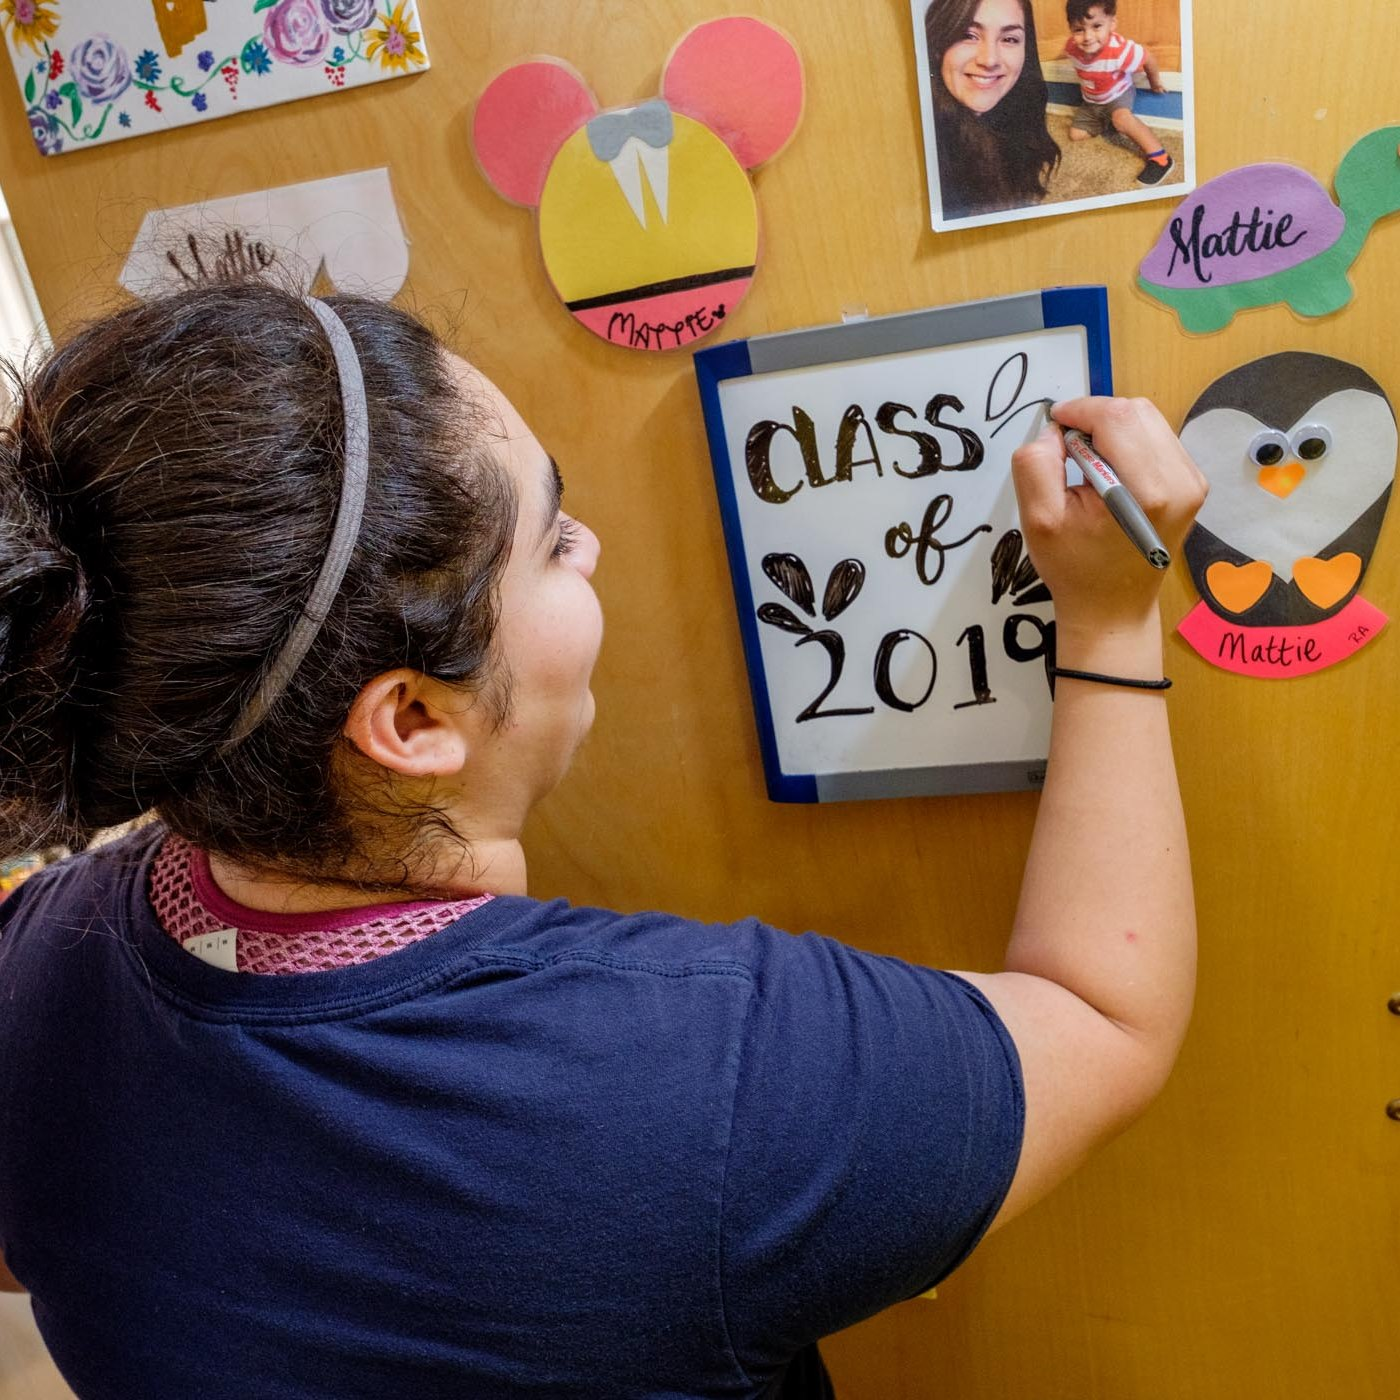 Mattie Del Toro Writes Class of 2019 on dry-erase board for What to Bring to Campus Story